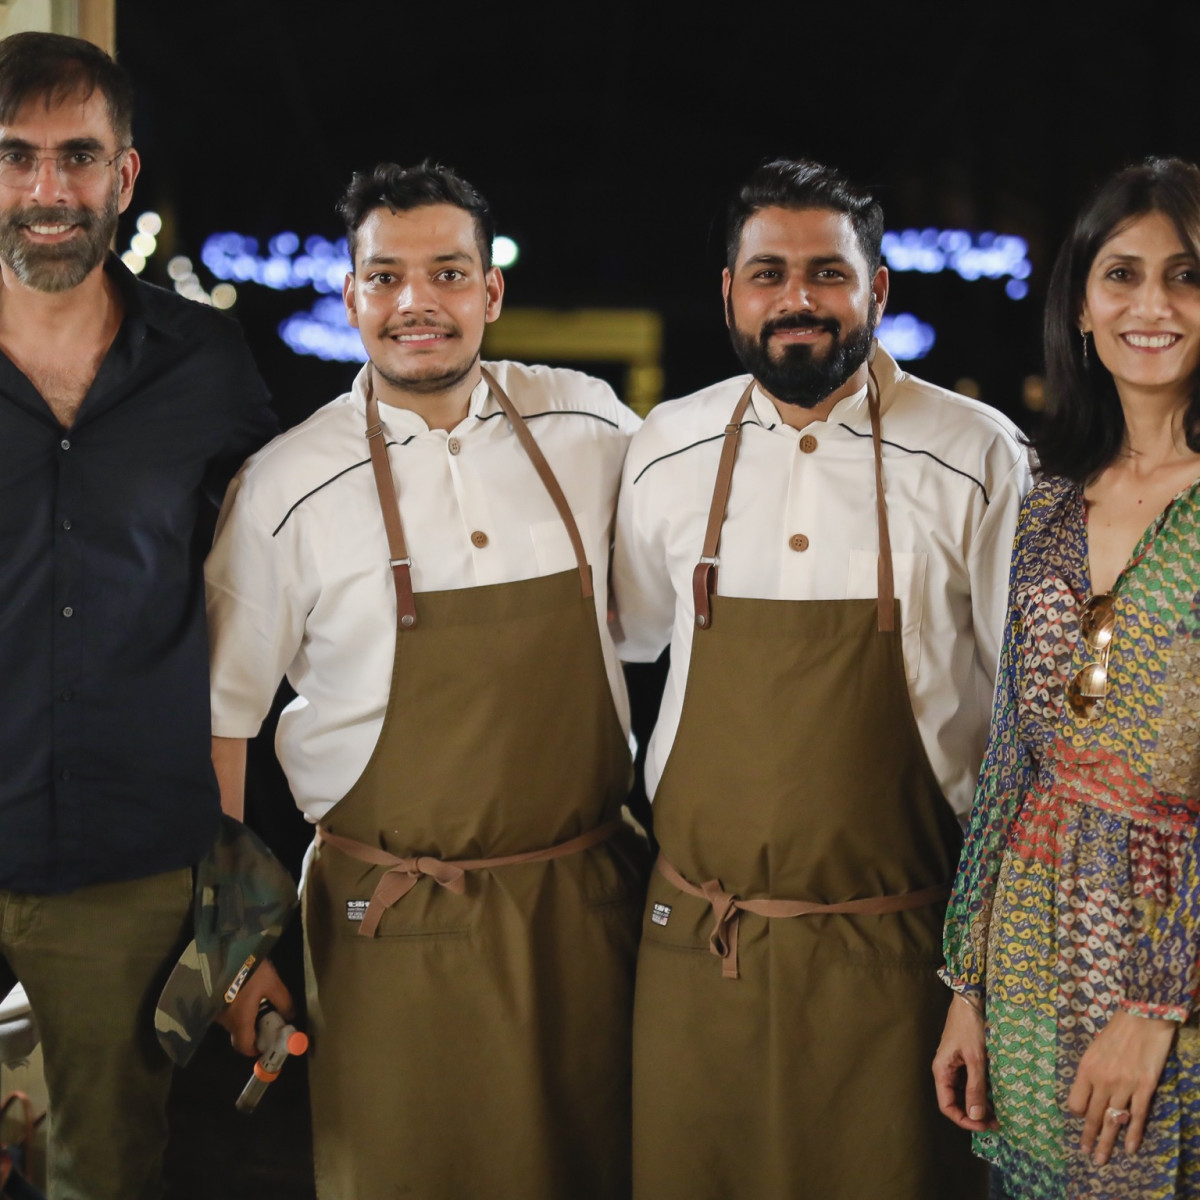 Recipe for Success Shammi Malik, Shivek Suri, Mayank Istwal, Mithu Malik Musaafer